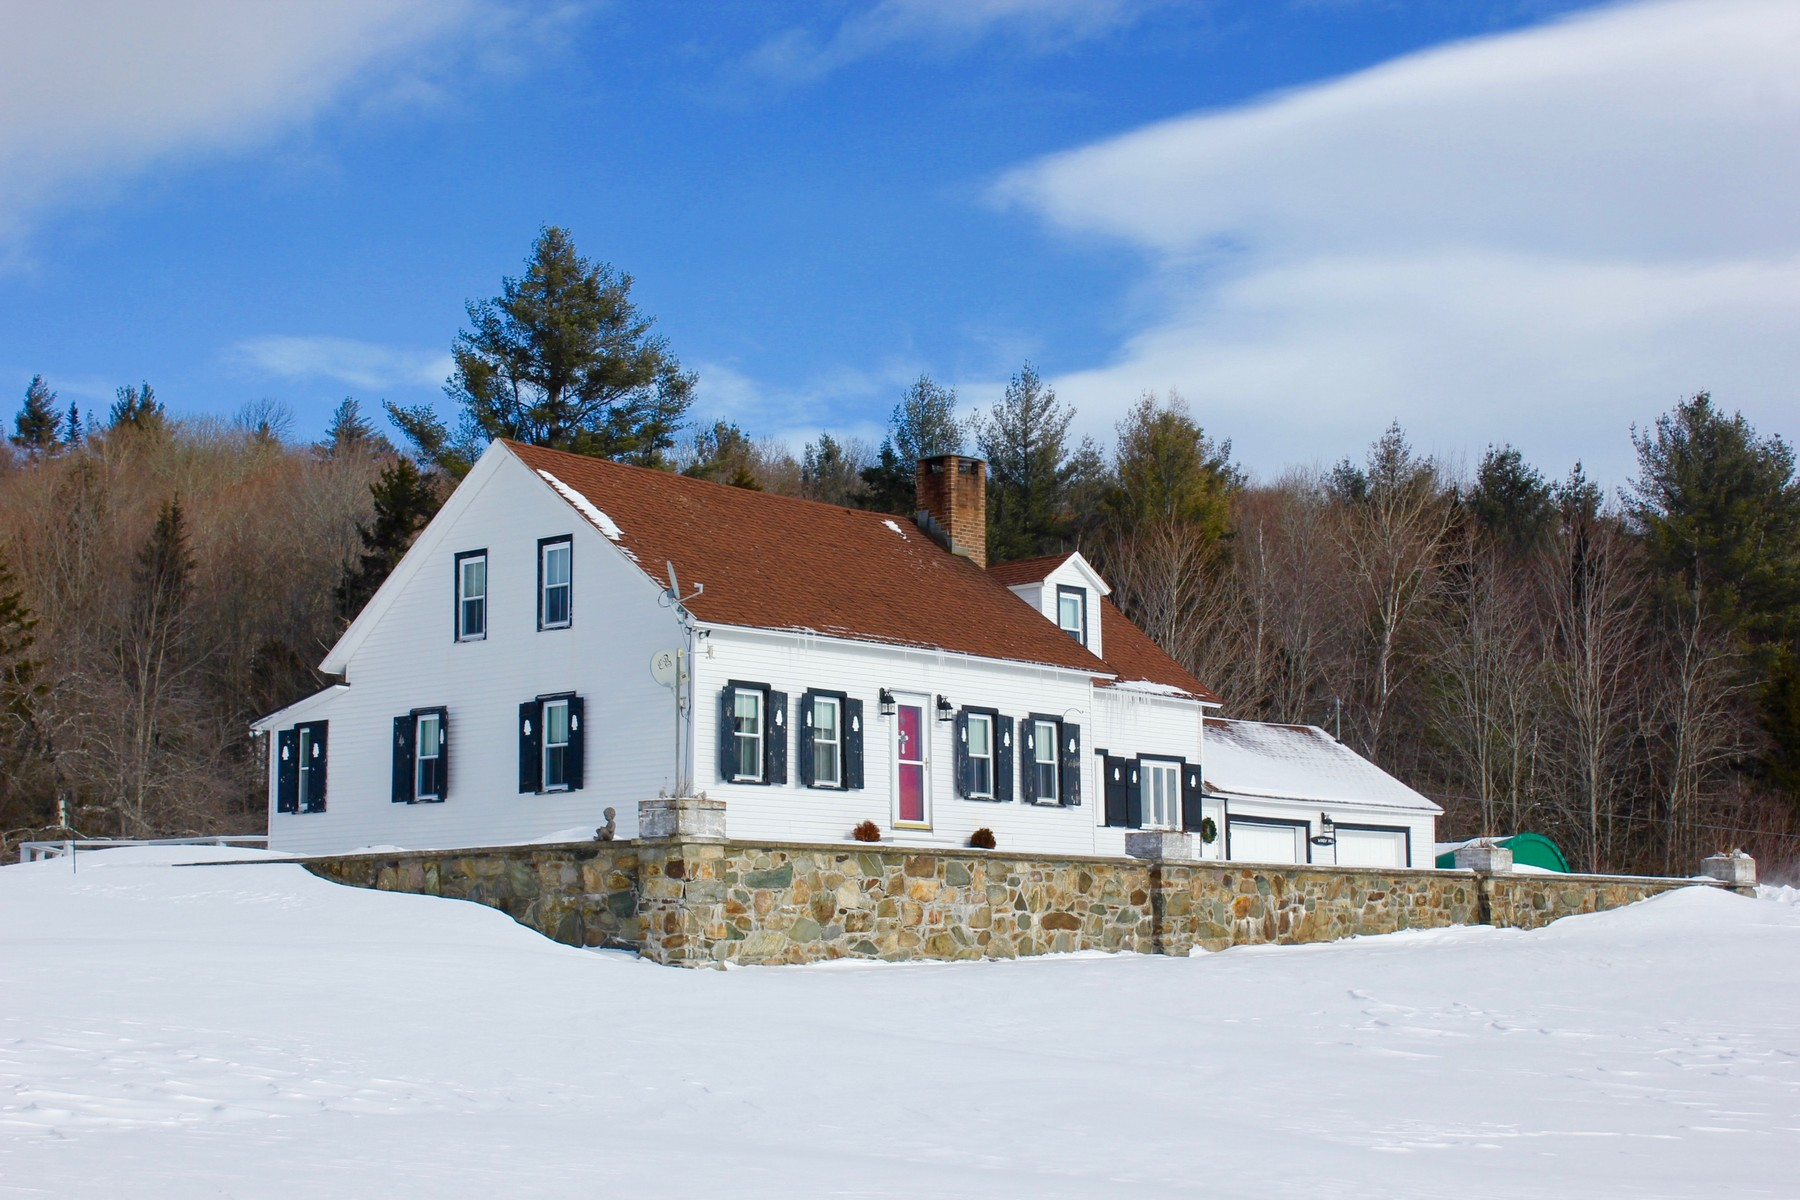 Maison unifamiliale pour l Vente à Welcome to Windy Lane 166 Windy Hill Ln Mount Holly, Vermont, 05758 États-Unis